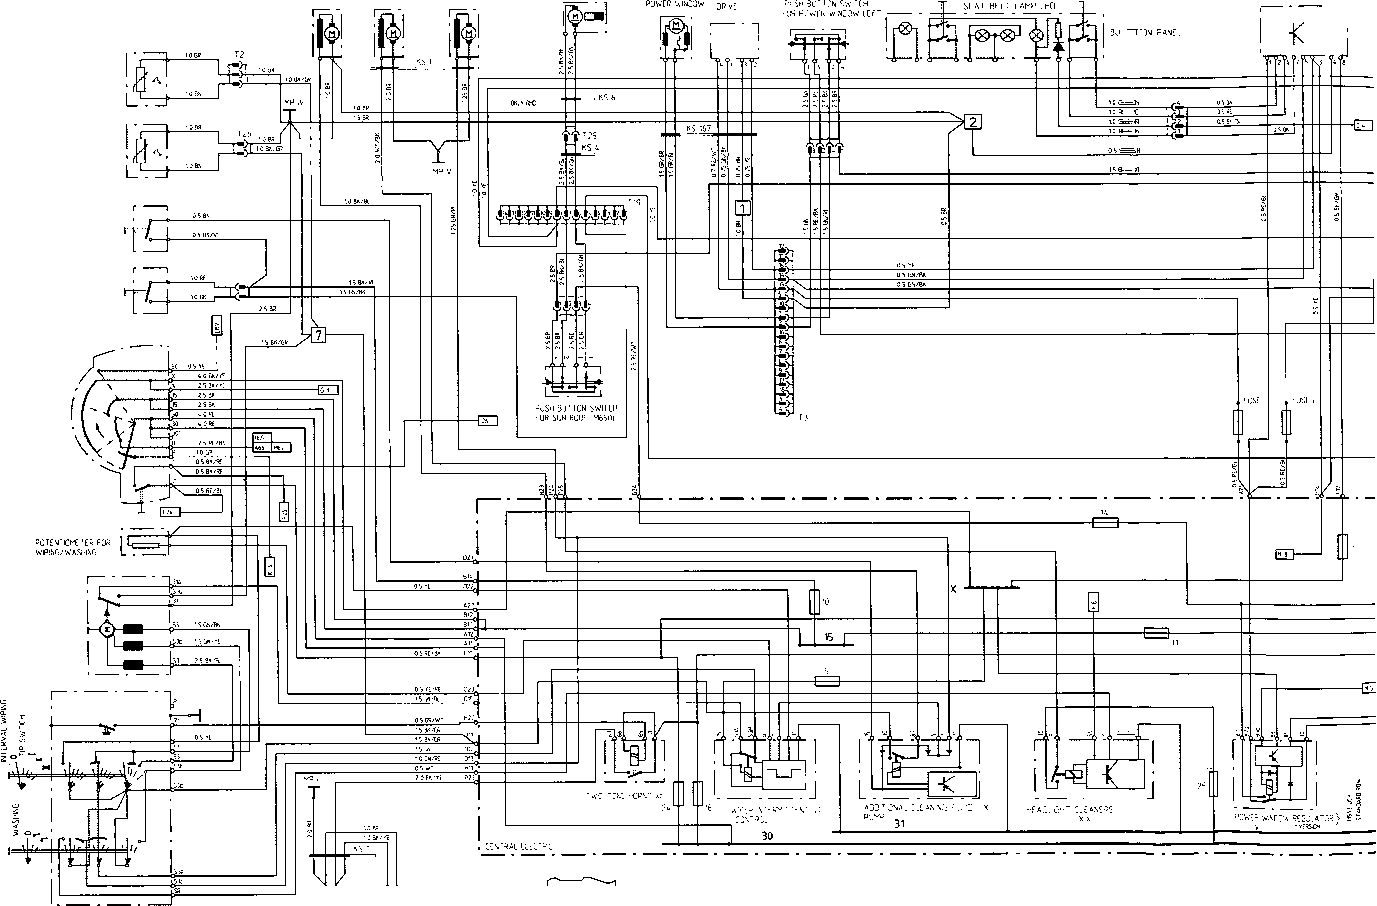 porsche 944 wiring diagram   26 wiring diagram images